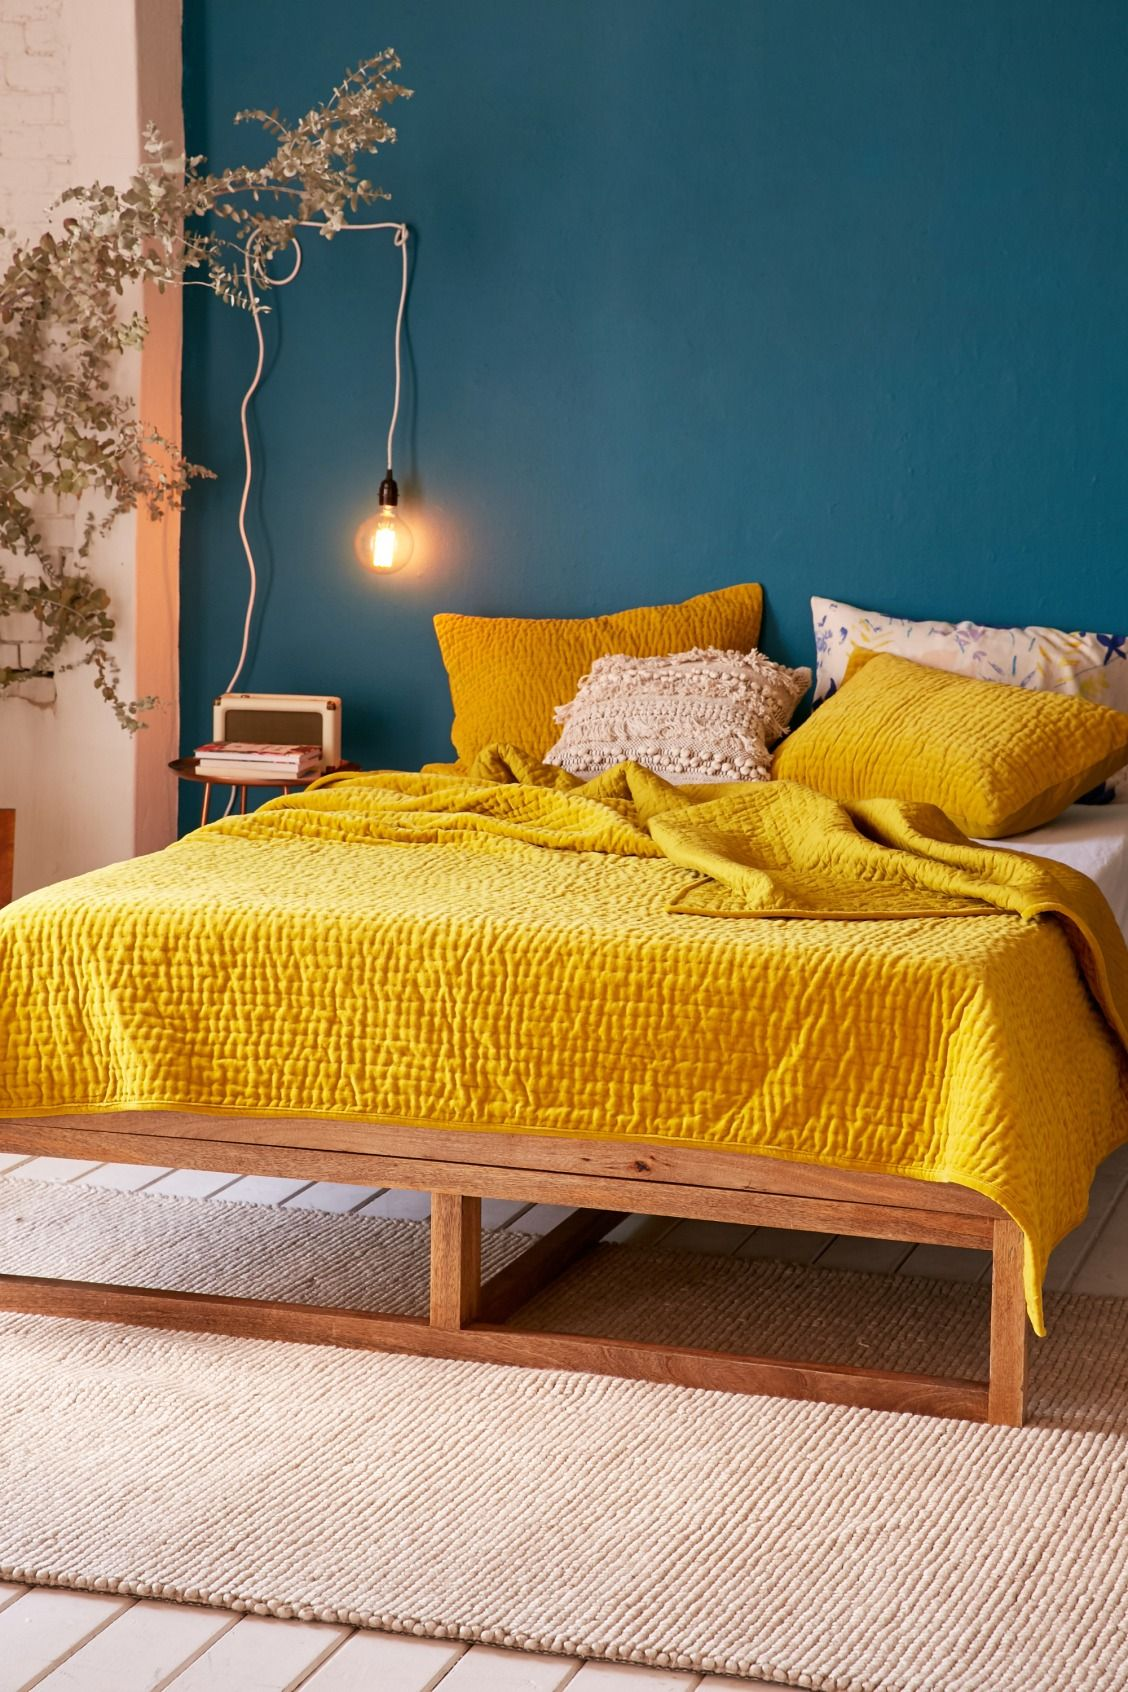 Yellow Walls Bedroom Beddingpillowsbedroomcolors Houses  Pinterest  Bedrooms